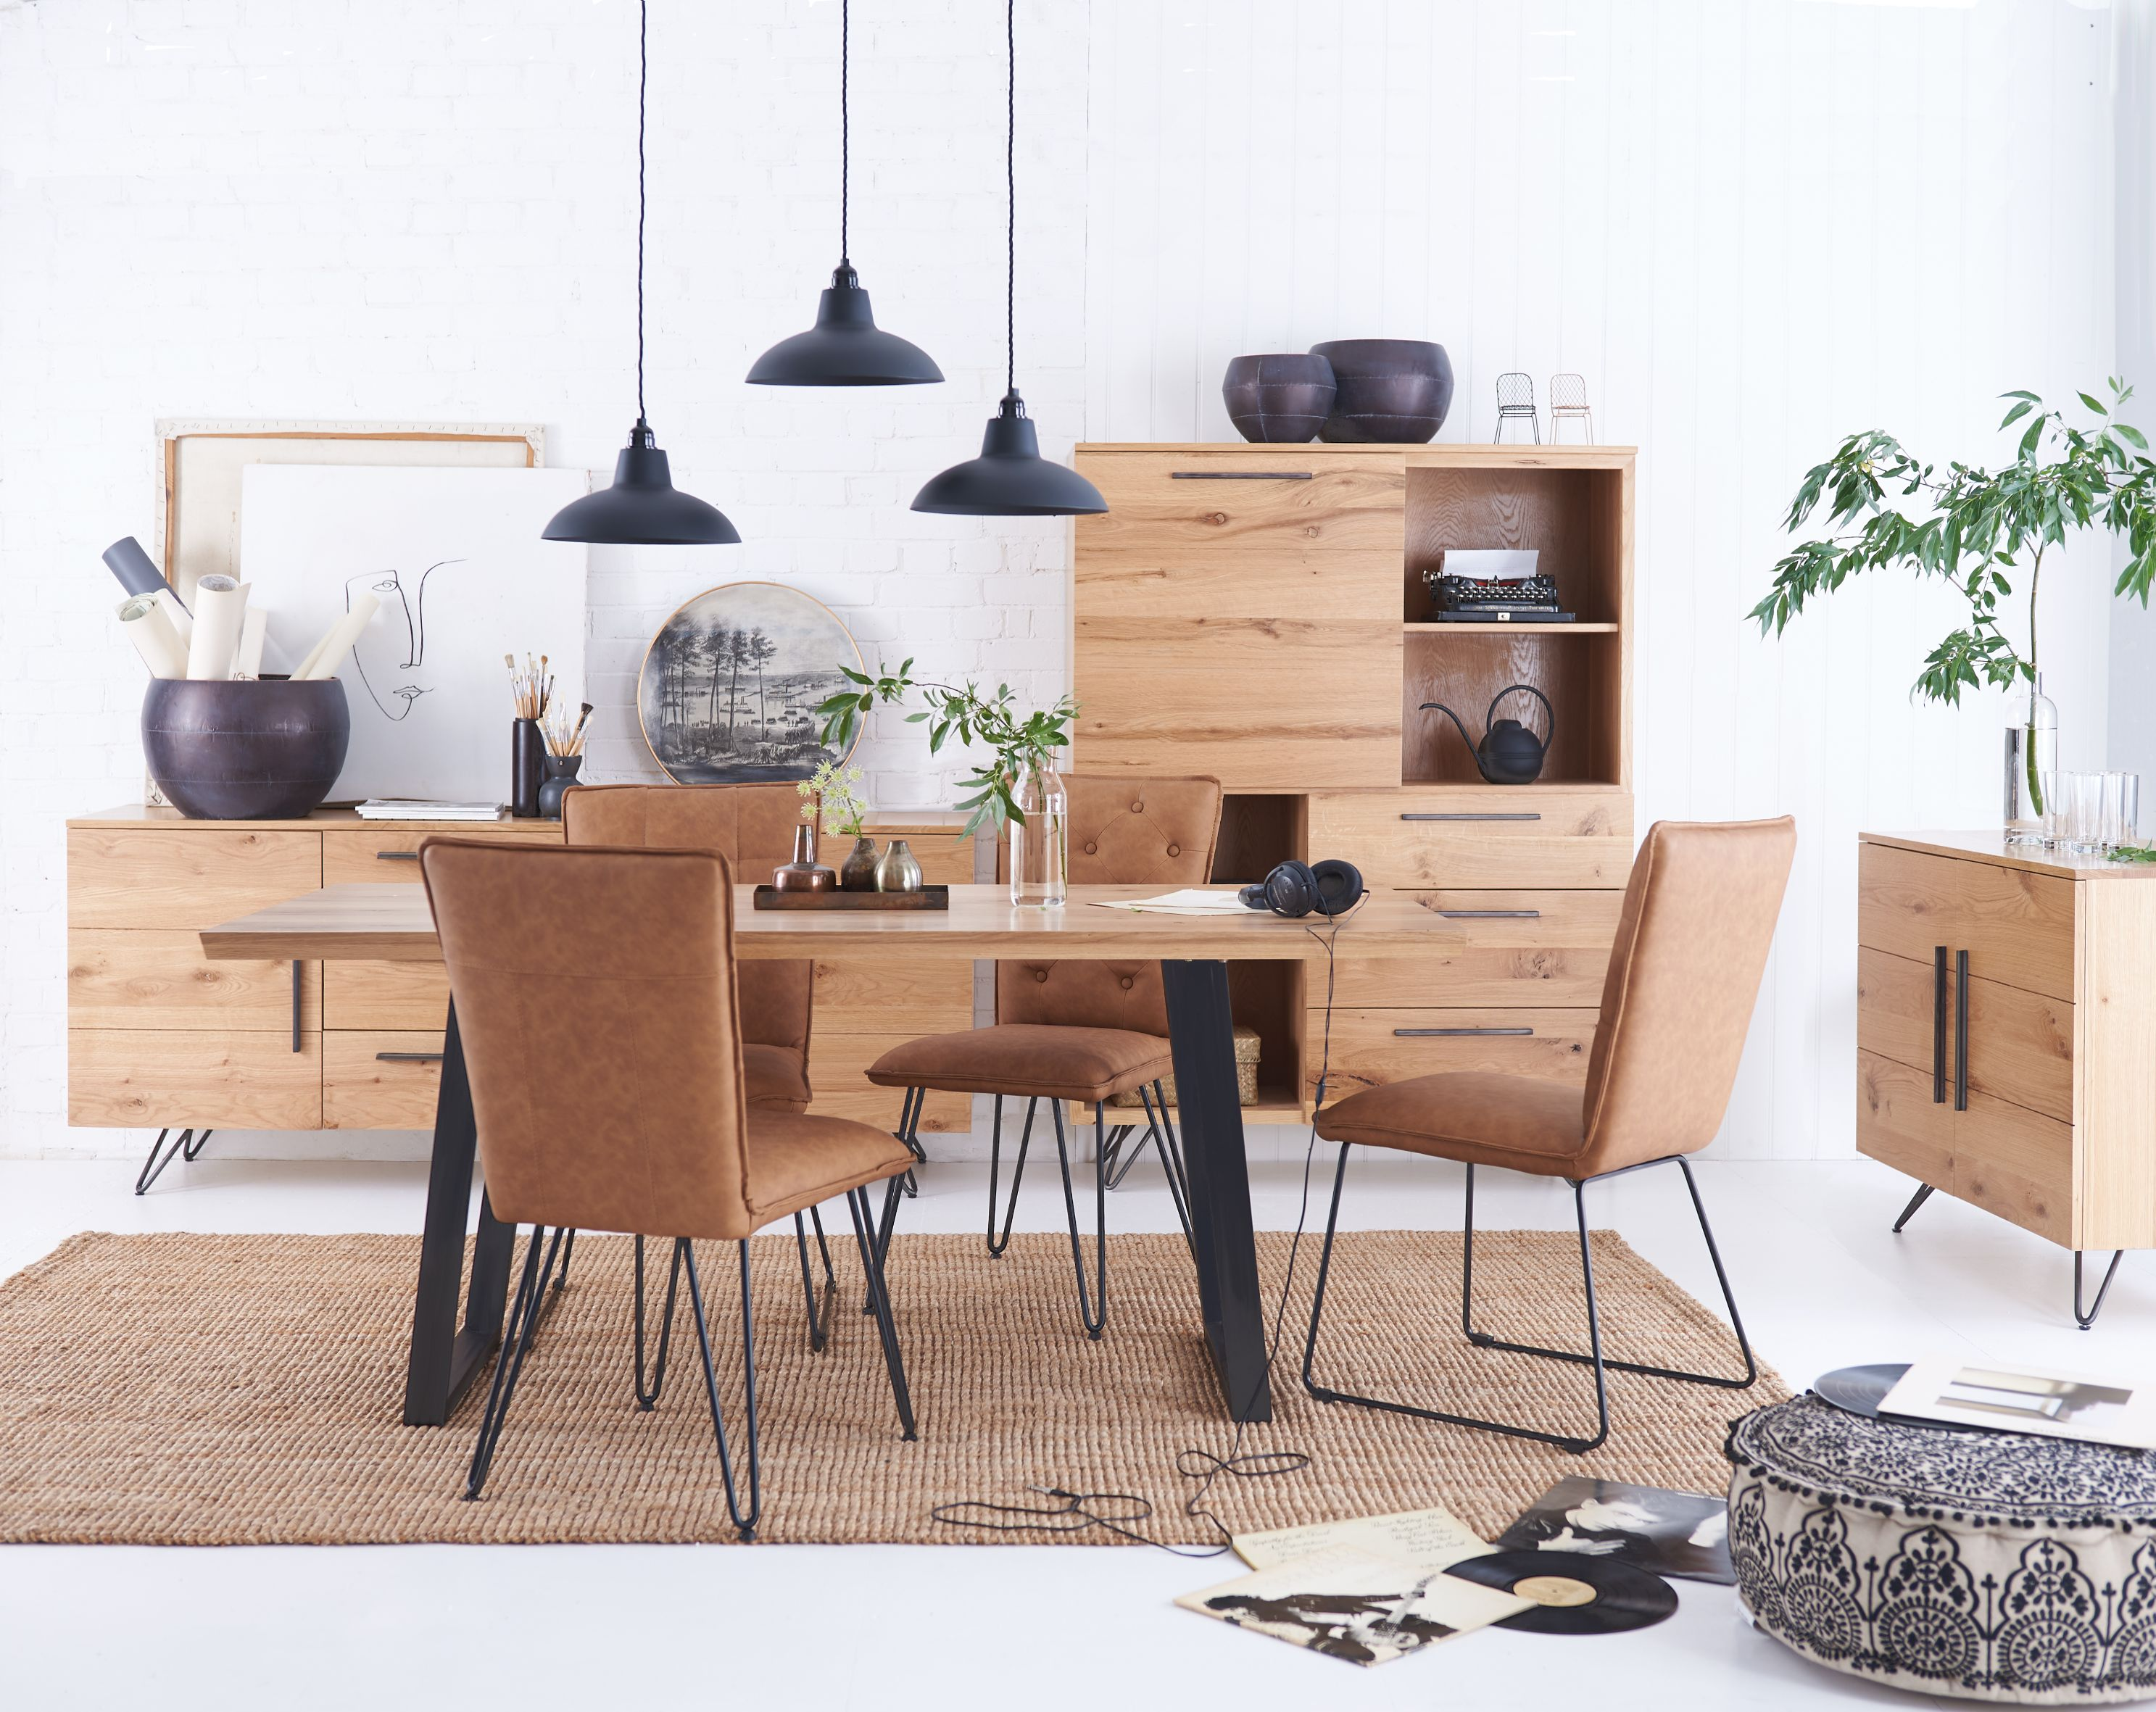 Kettle Interiors - IKALIS - Living & Dining